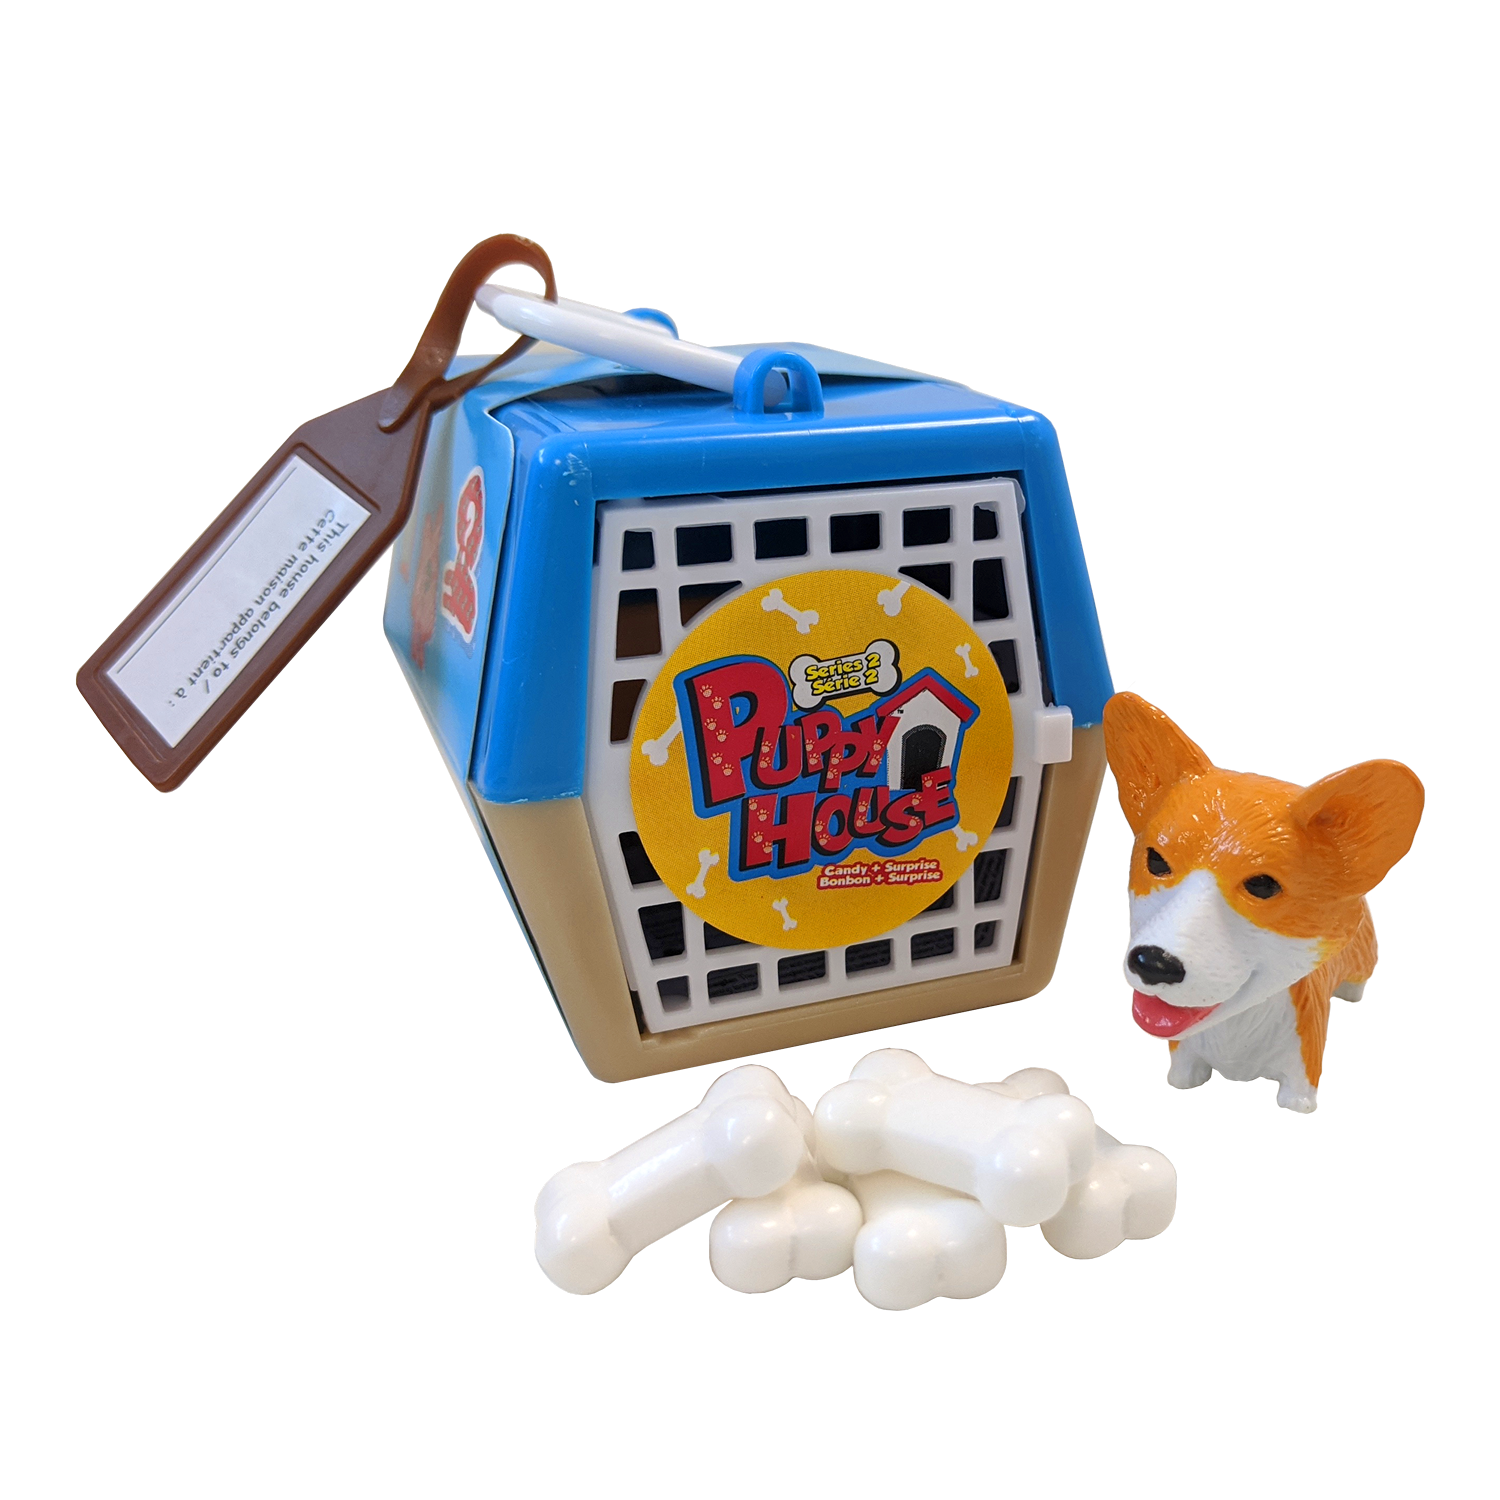 https://exclusivebrands.ca/wp-content/uploads/2021/02/prod-novelty-PuppyHouse-e1613512487944.png